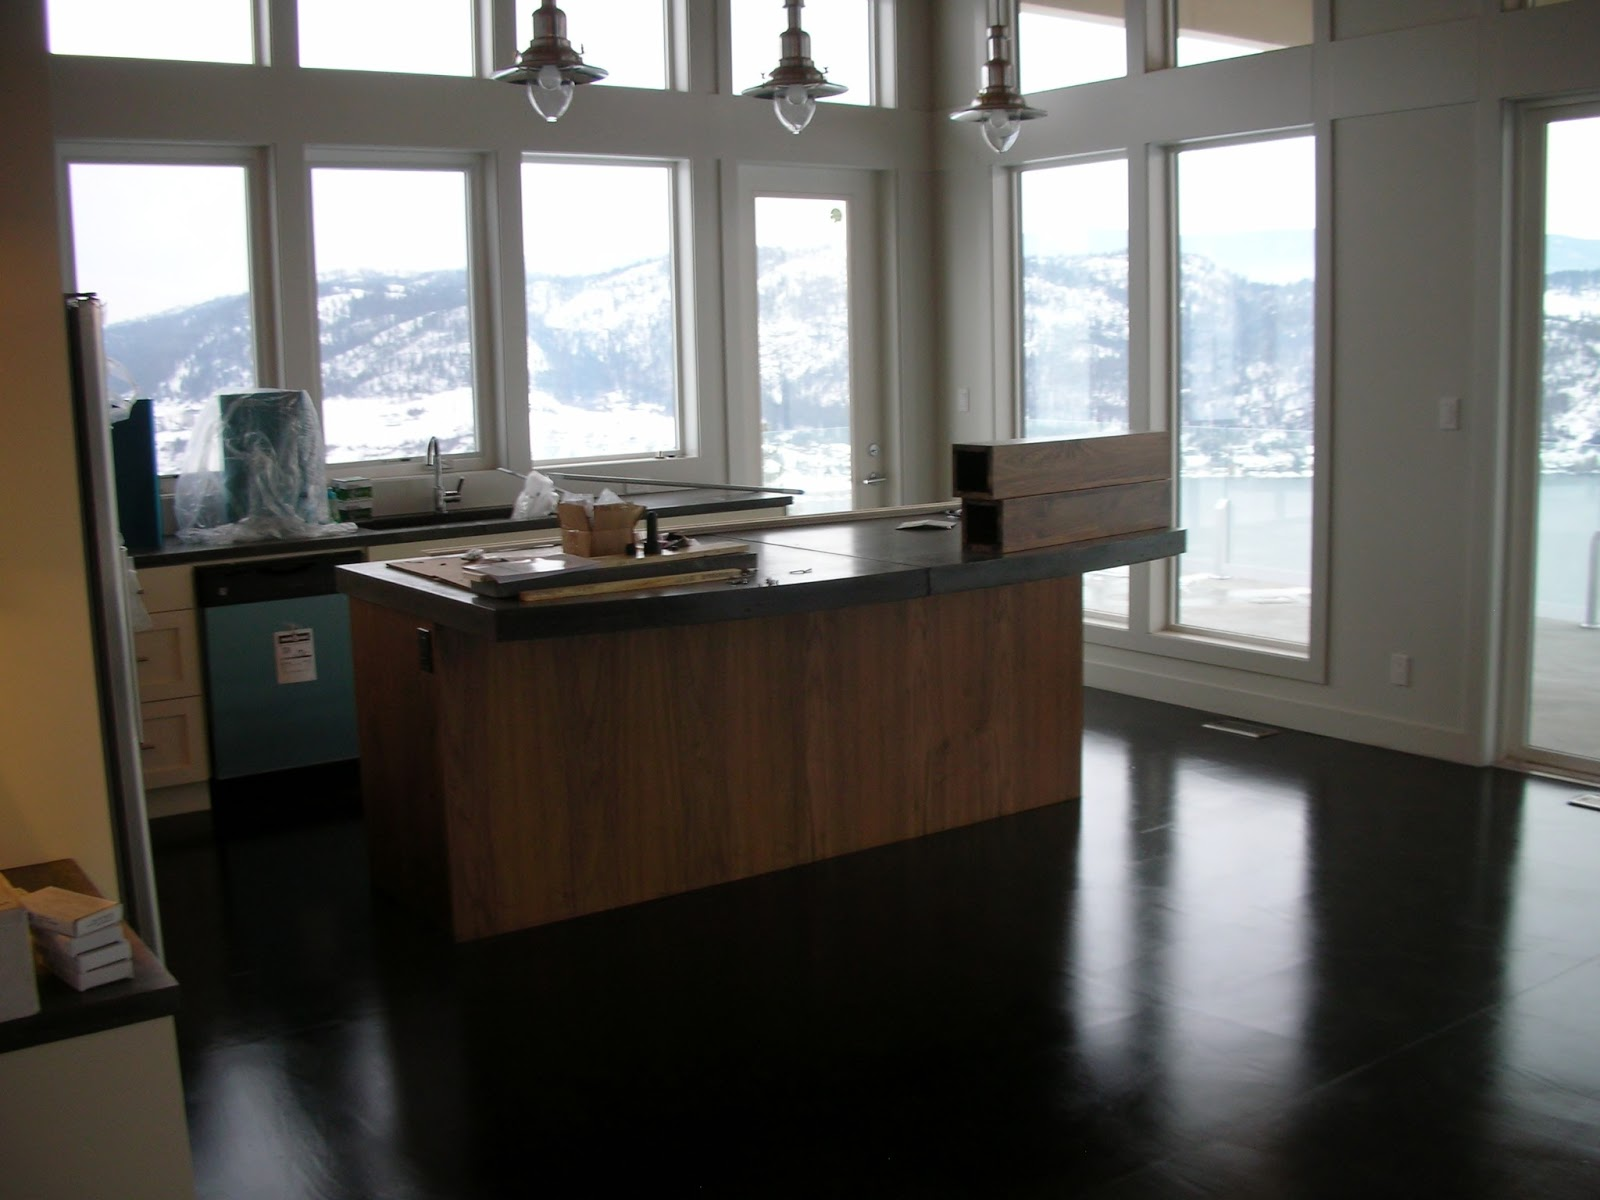 MODE CONCRETE: Considering Concrete Floors in the Kitchen, Bathroom or ...